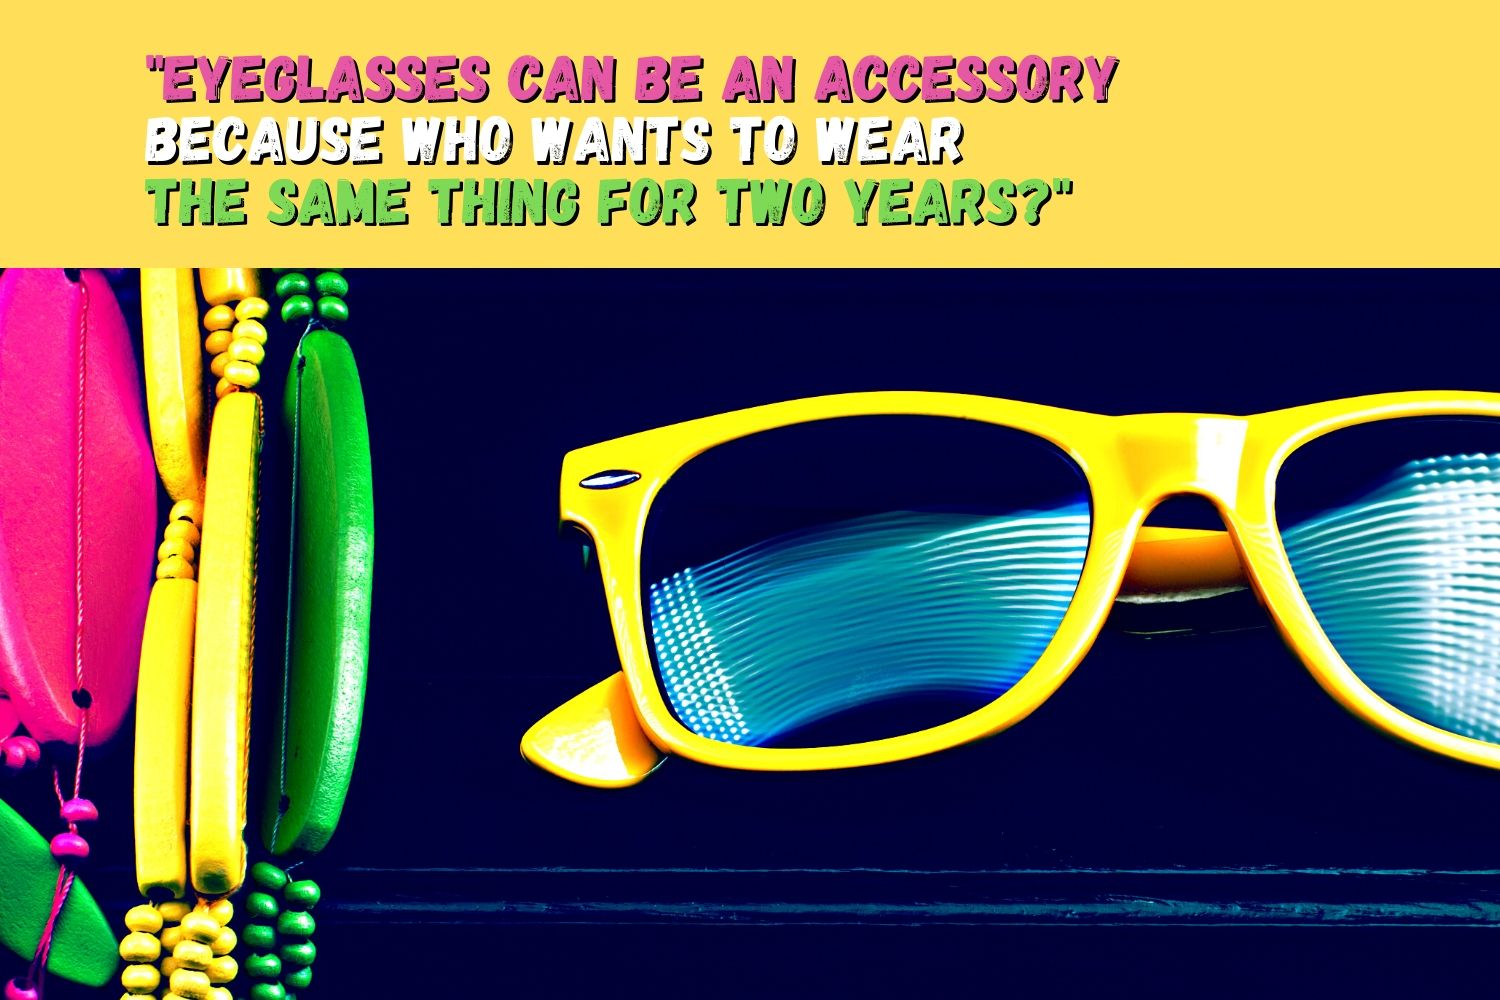 eyeglass can be an accessory